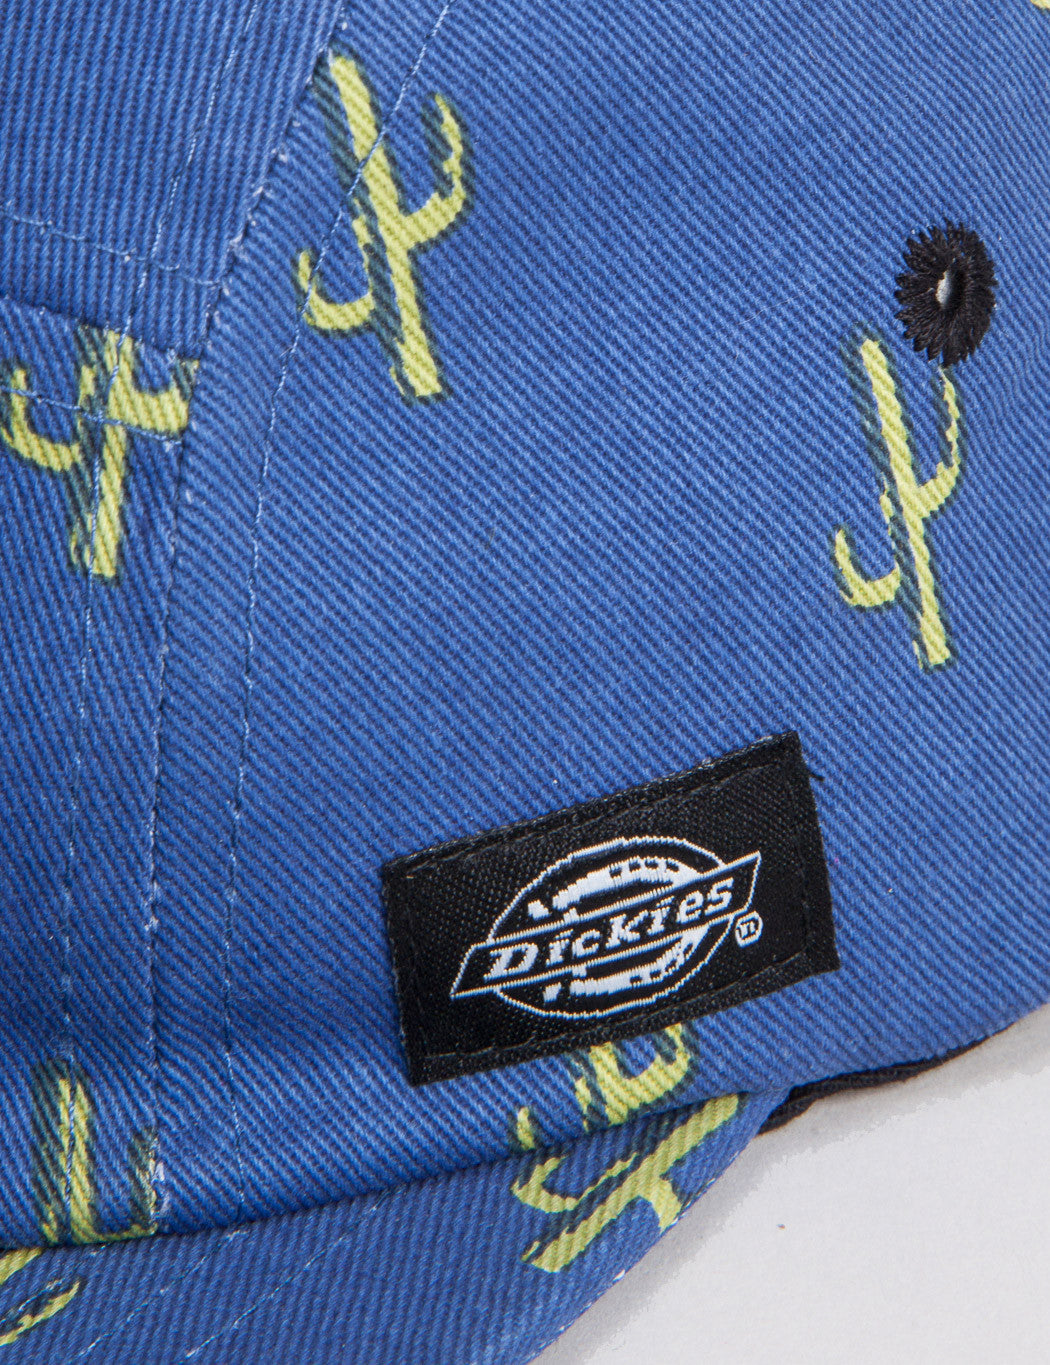 Dickies Florida City Cactus 5-Panel Cap - Blue